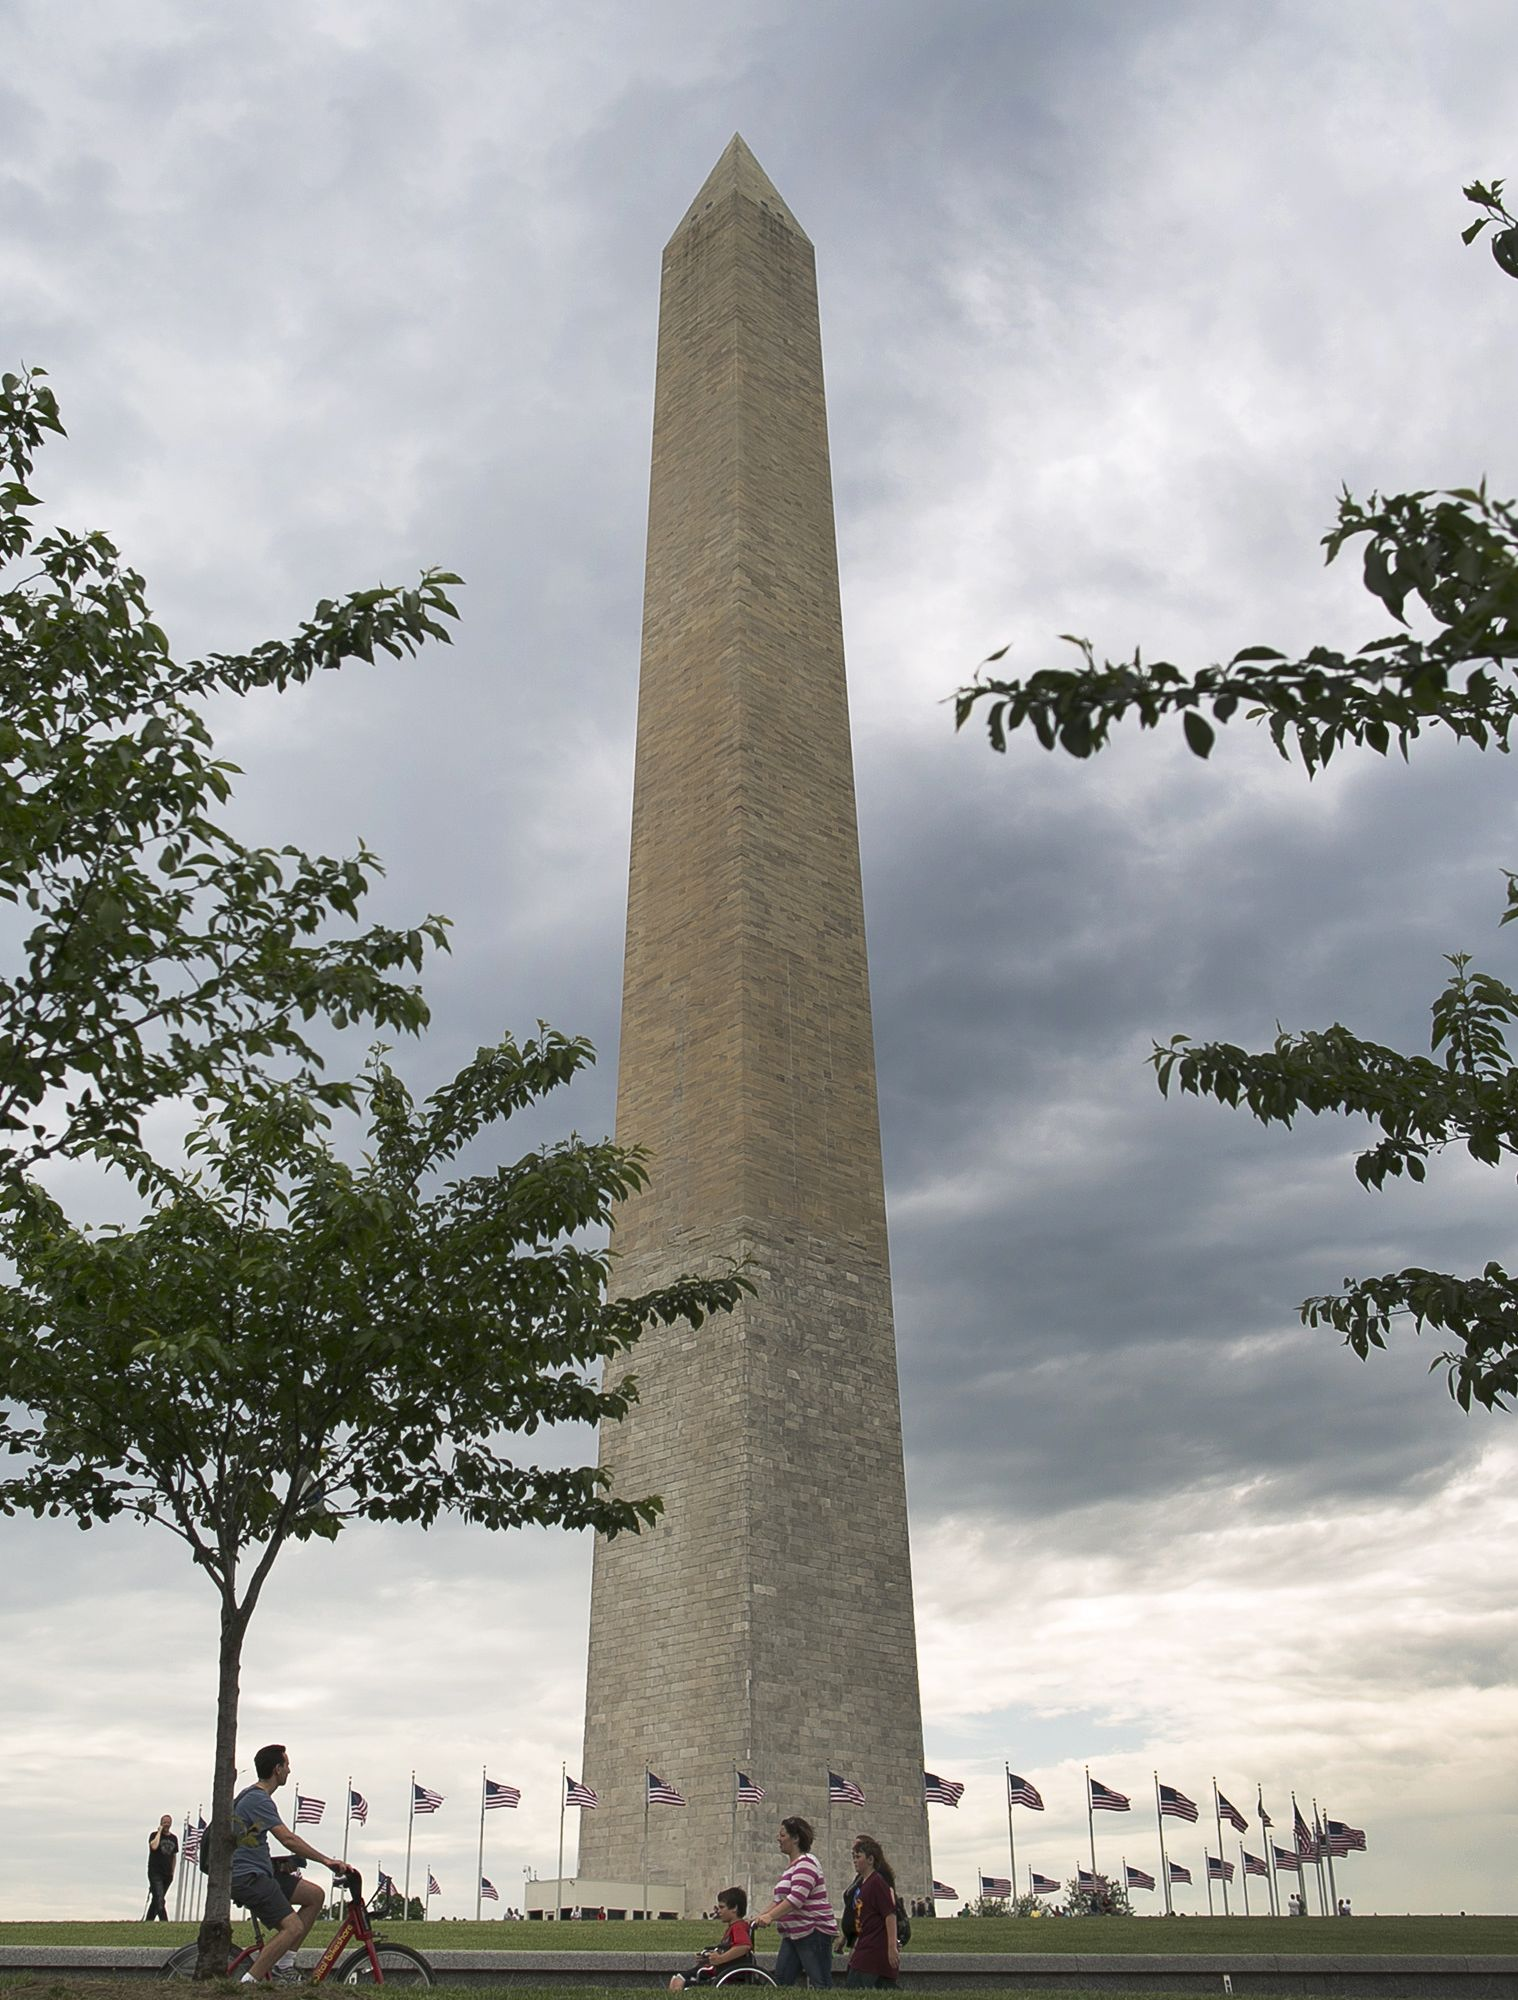 The Washington Monument Which Sustained Damage From An Earthquake In August 2011 Re Opened To The Public On Monday May 12 Washington Monument Photo Monument